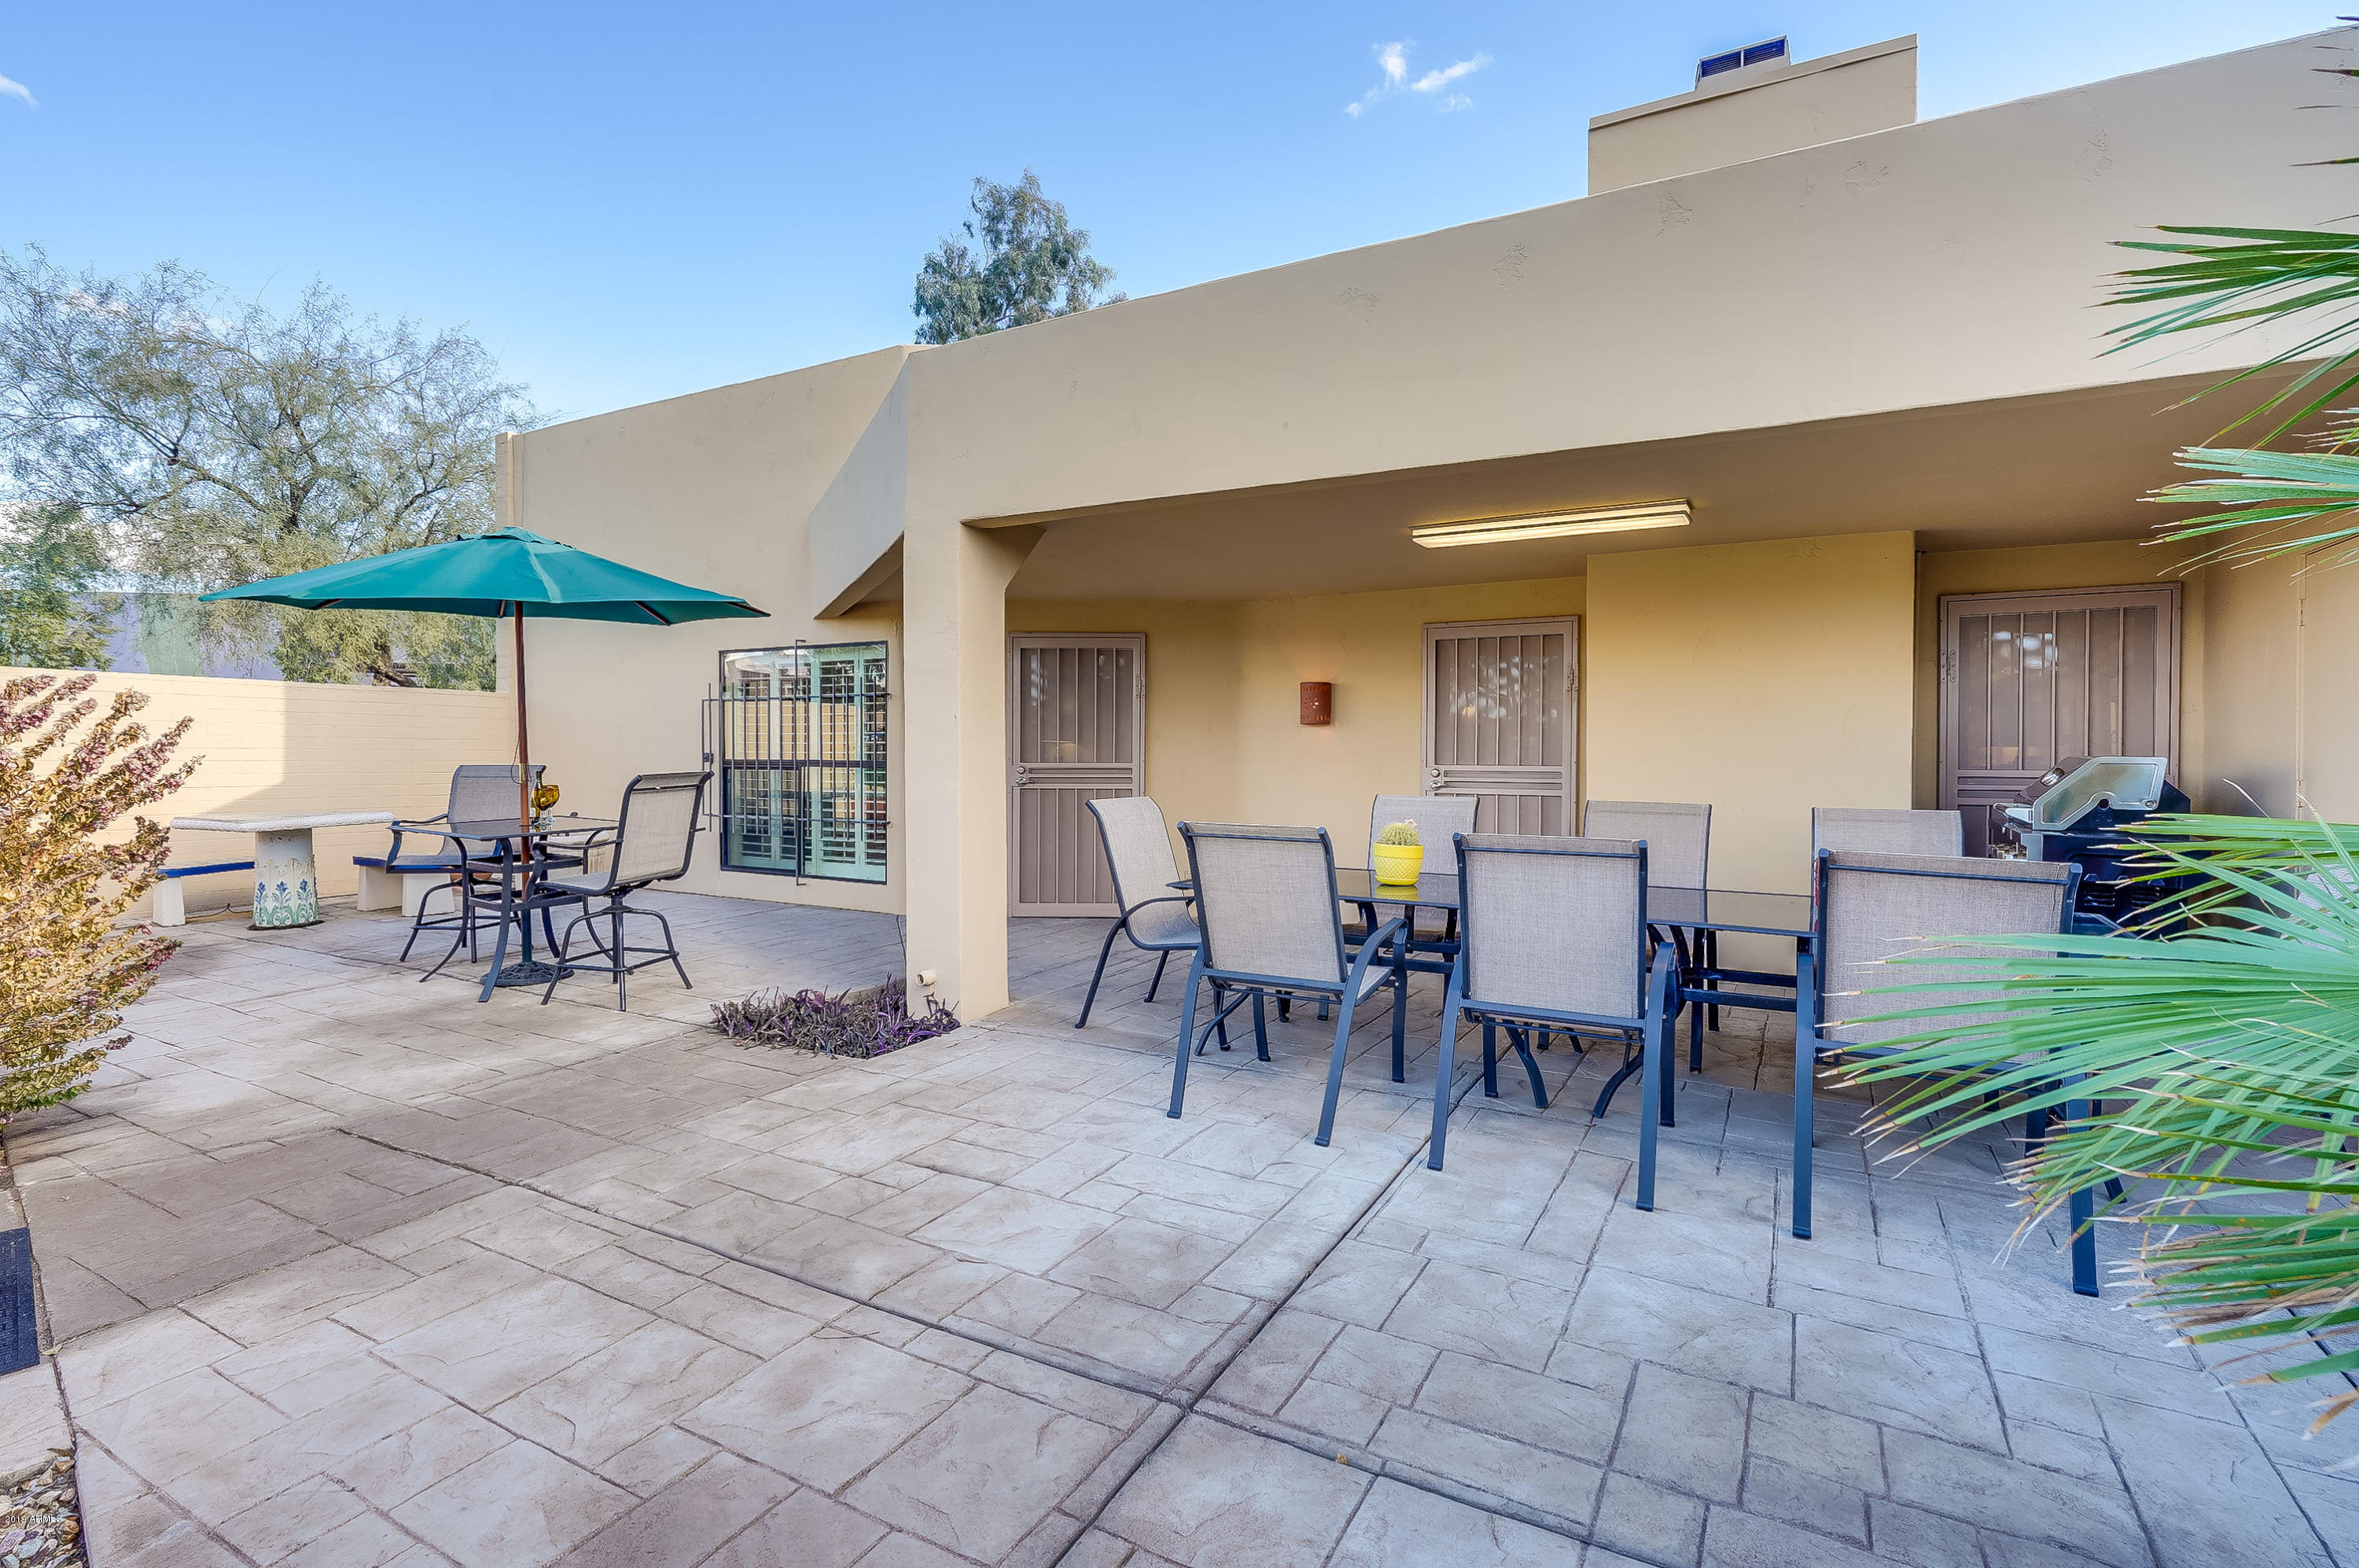 Highly motivated sellers, just make an offer !! Possible lease/purchase or seller financing! One of the biggest and nicest patio homes at Sands McCormick!